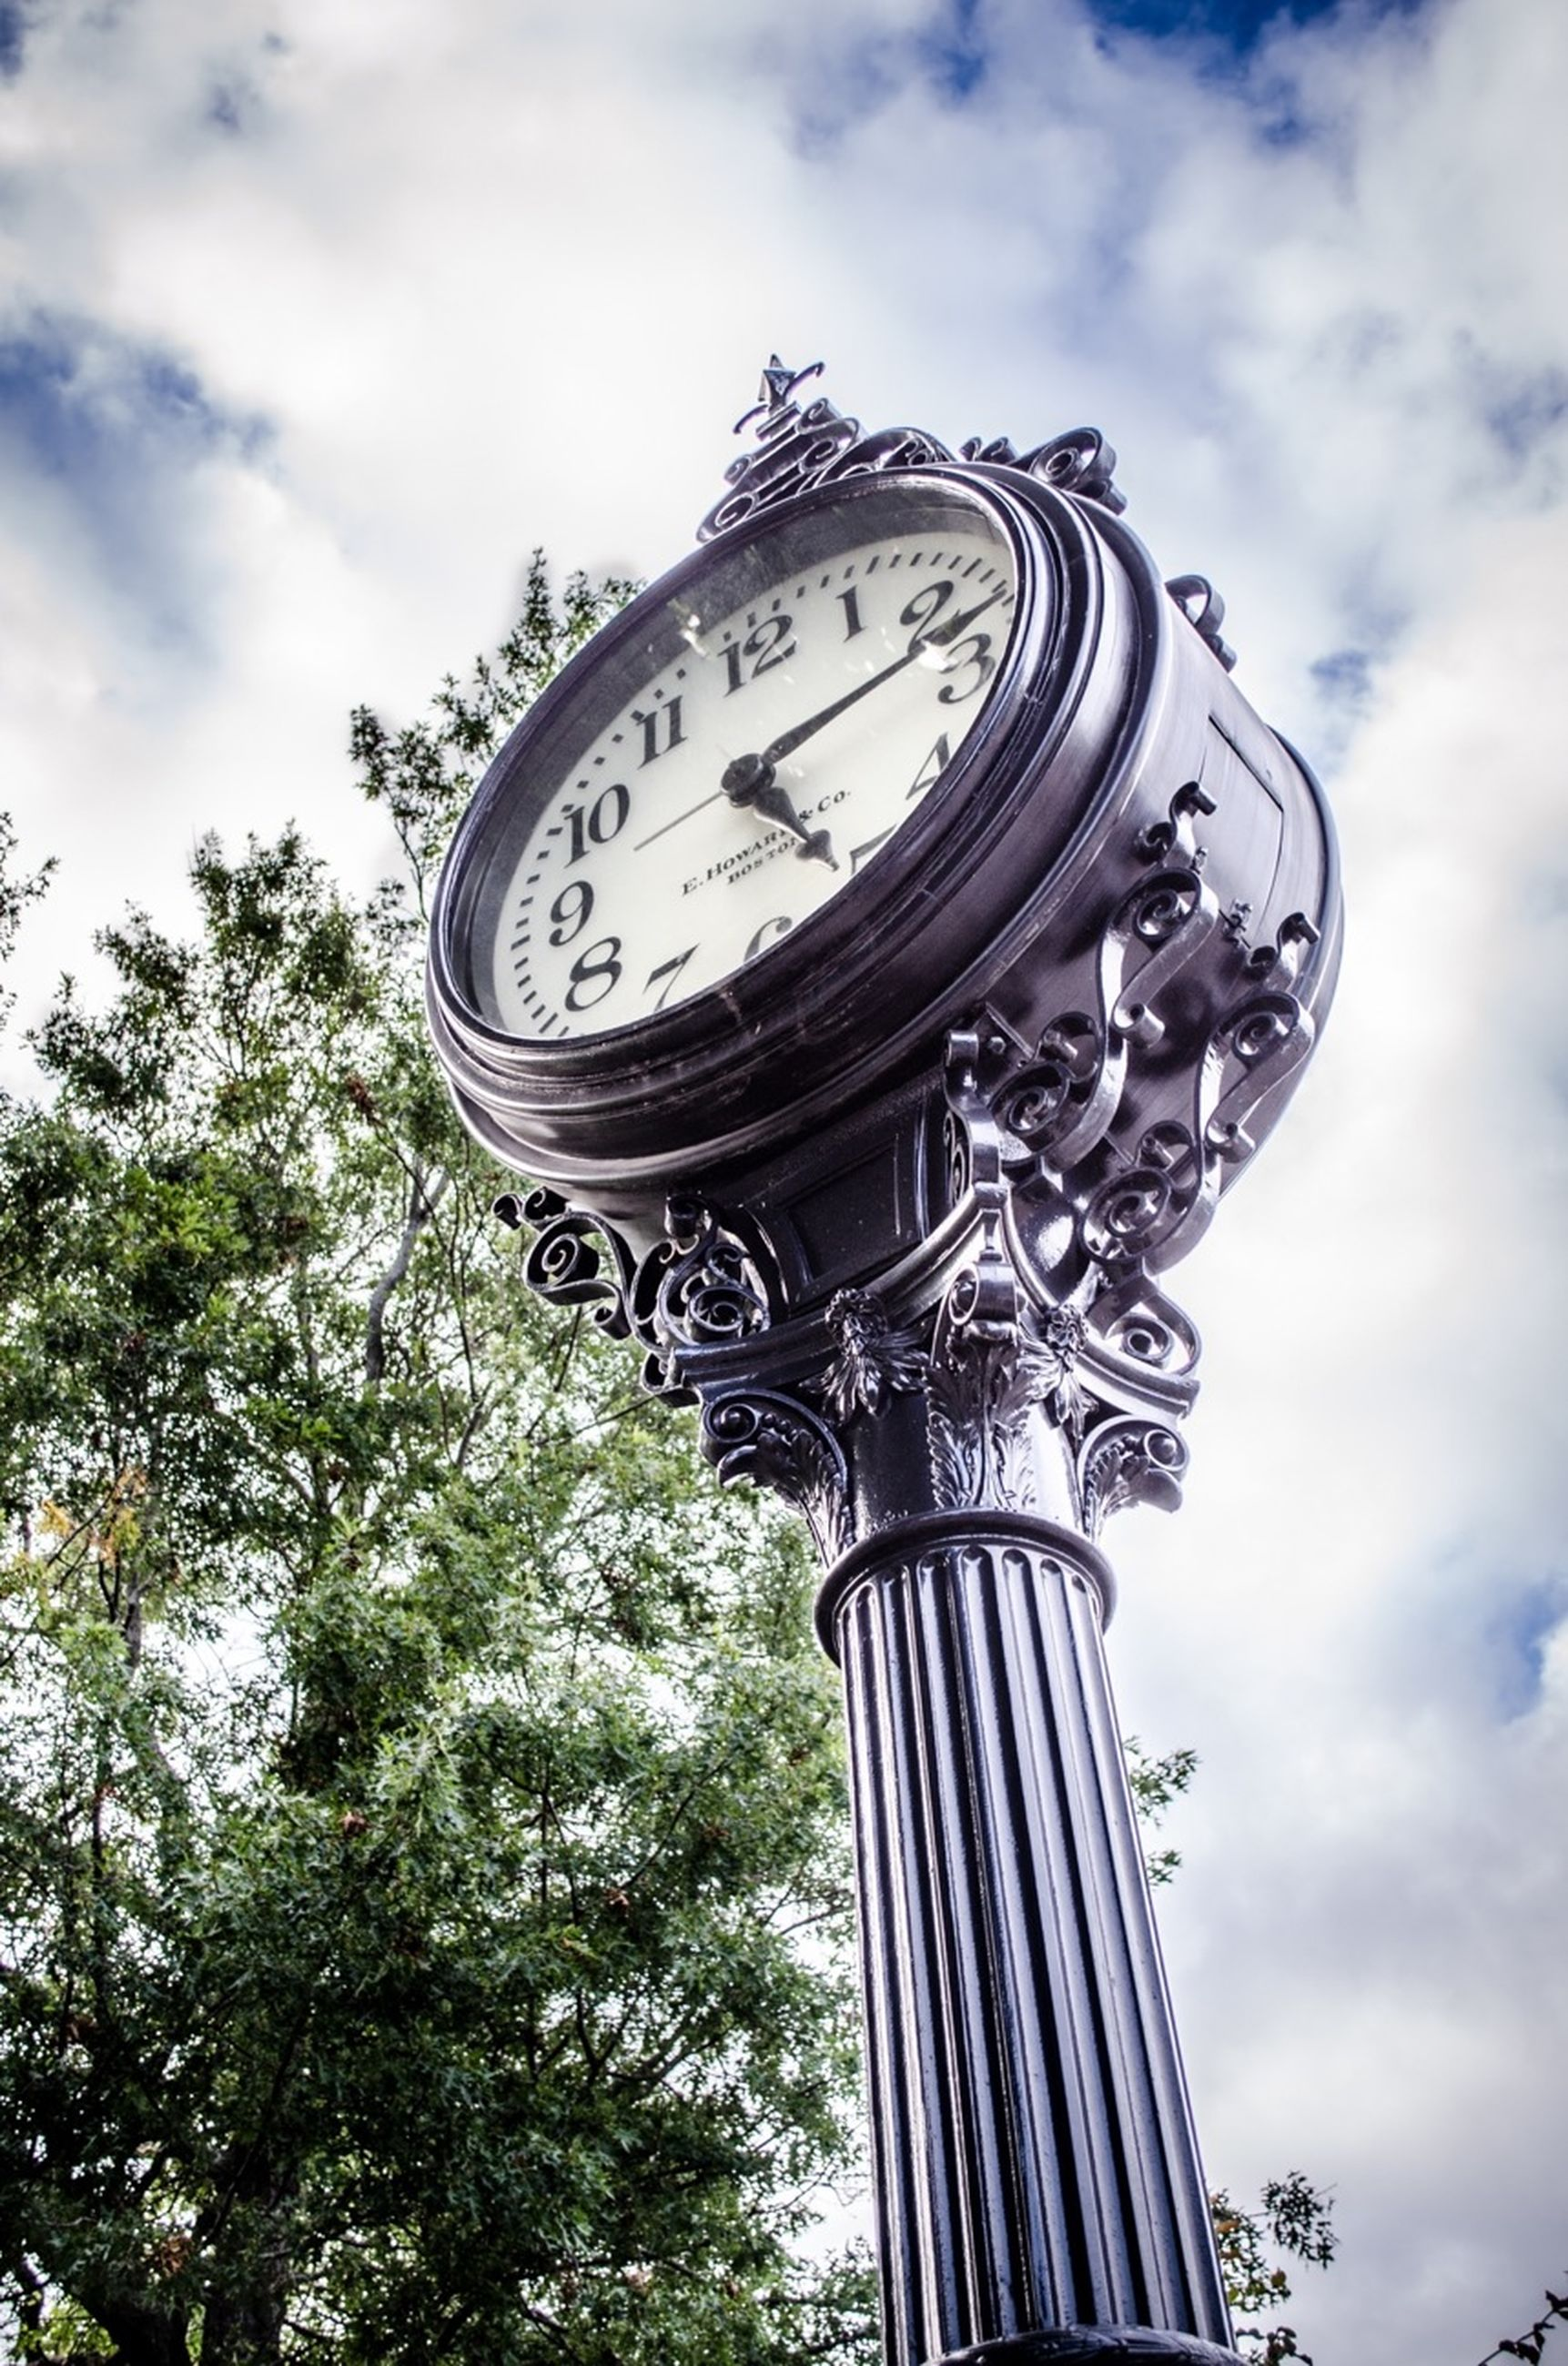 low angle view, sky, clock, time, text, cloud - sky, tree, cloud, history, architecture, communication, built structure, day, ornate, famous place, travel destinations, art and craft, no people, religion, cloudy